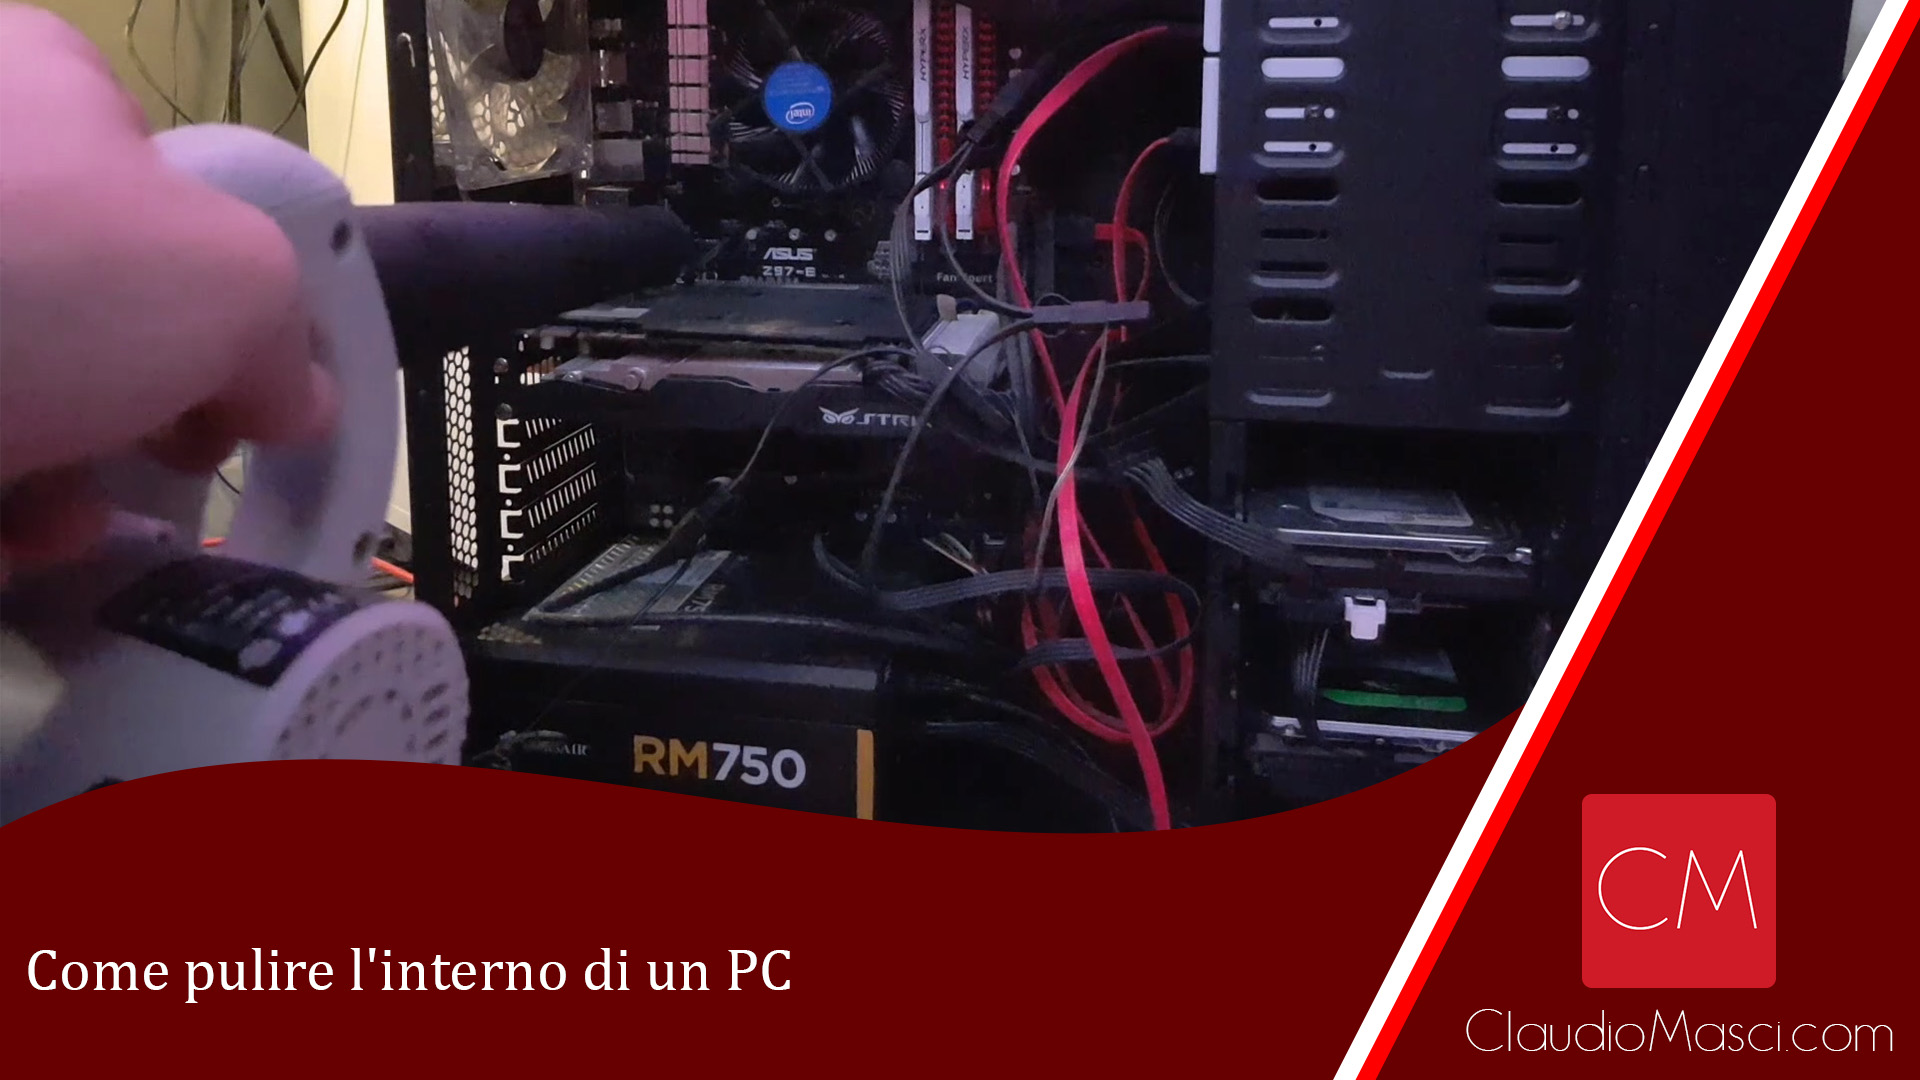 Come pulire l'interno di un PC